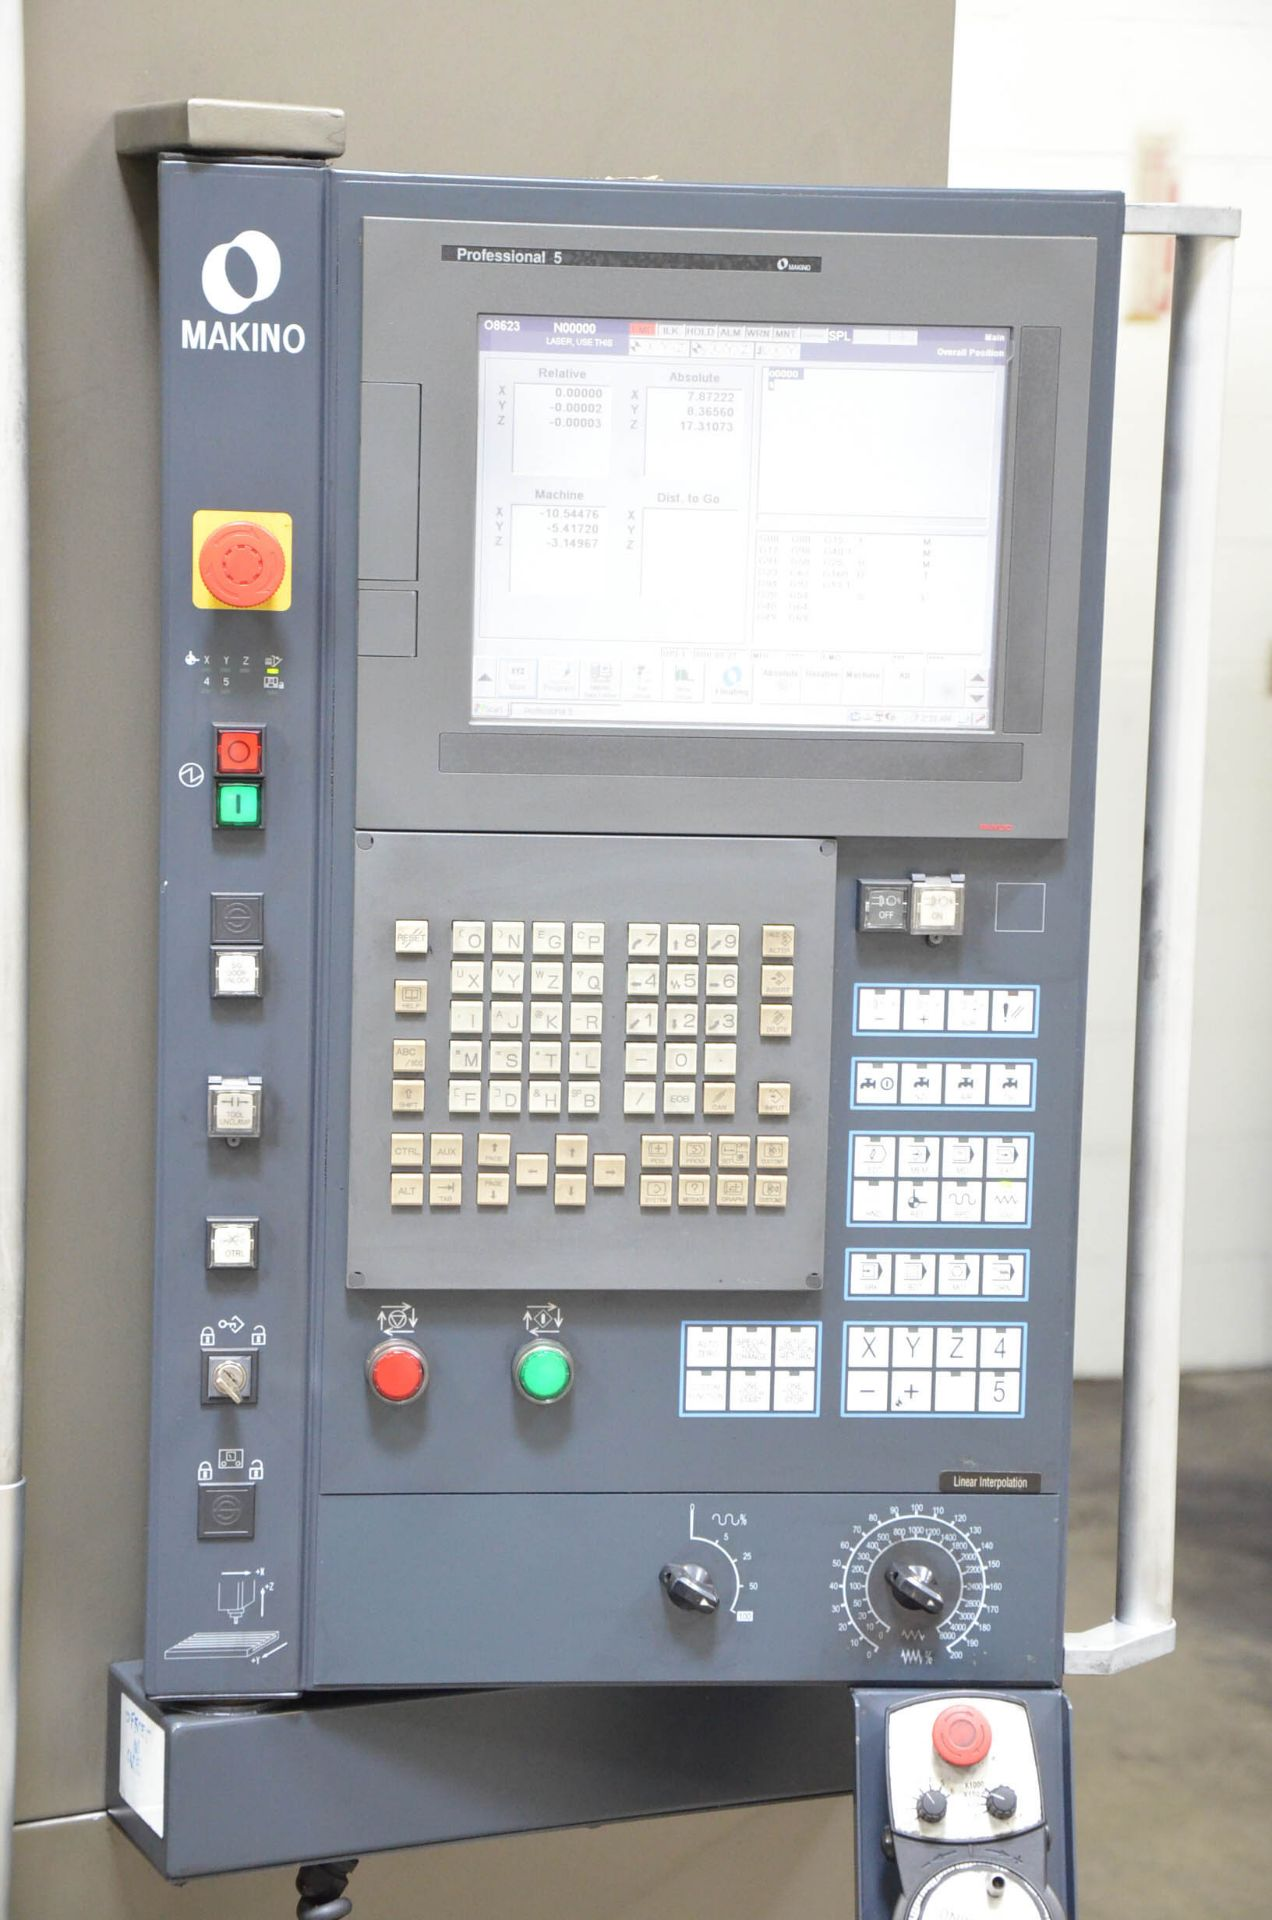 MAKINO (2012) F3 CNC VERTICAL MACHINING CENTER WITH MAKINO PROFESSIONAL 5 TOUCHSCREEN CNC CONTROL, - Image 6 of 9